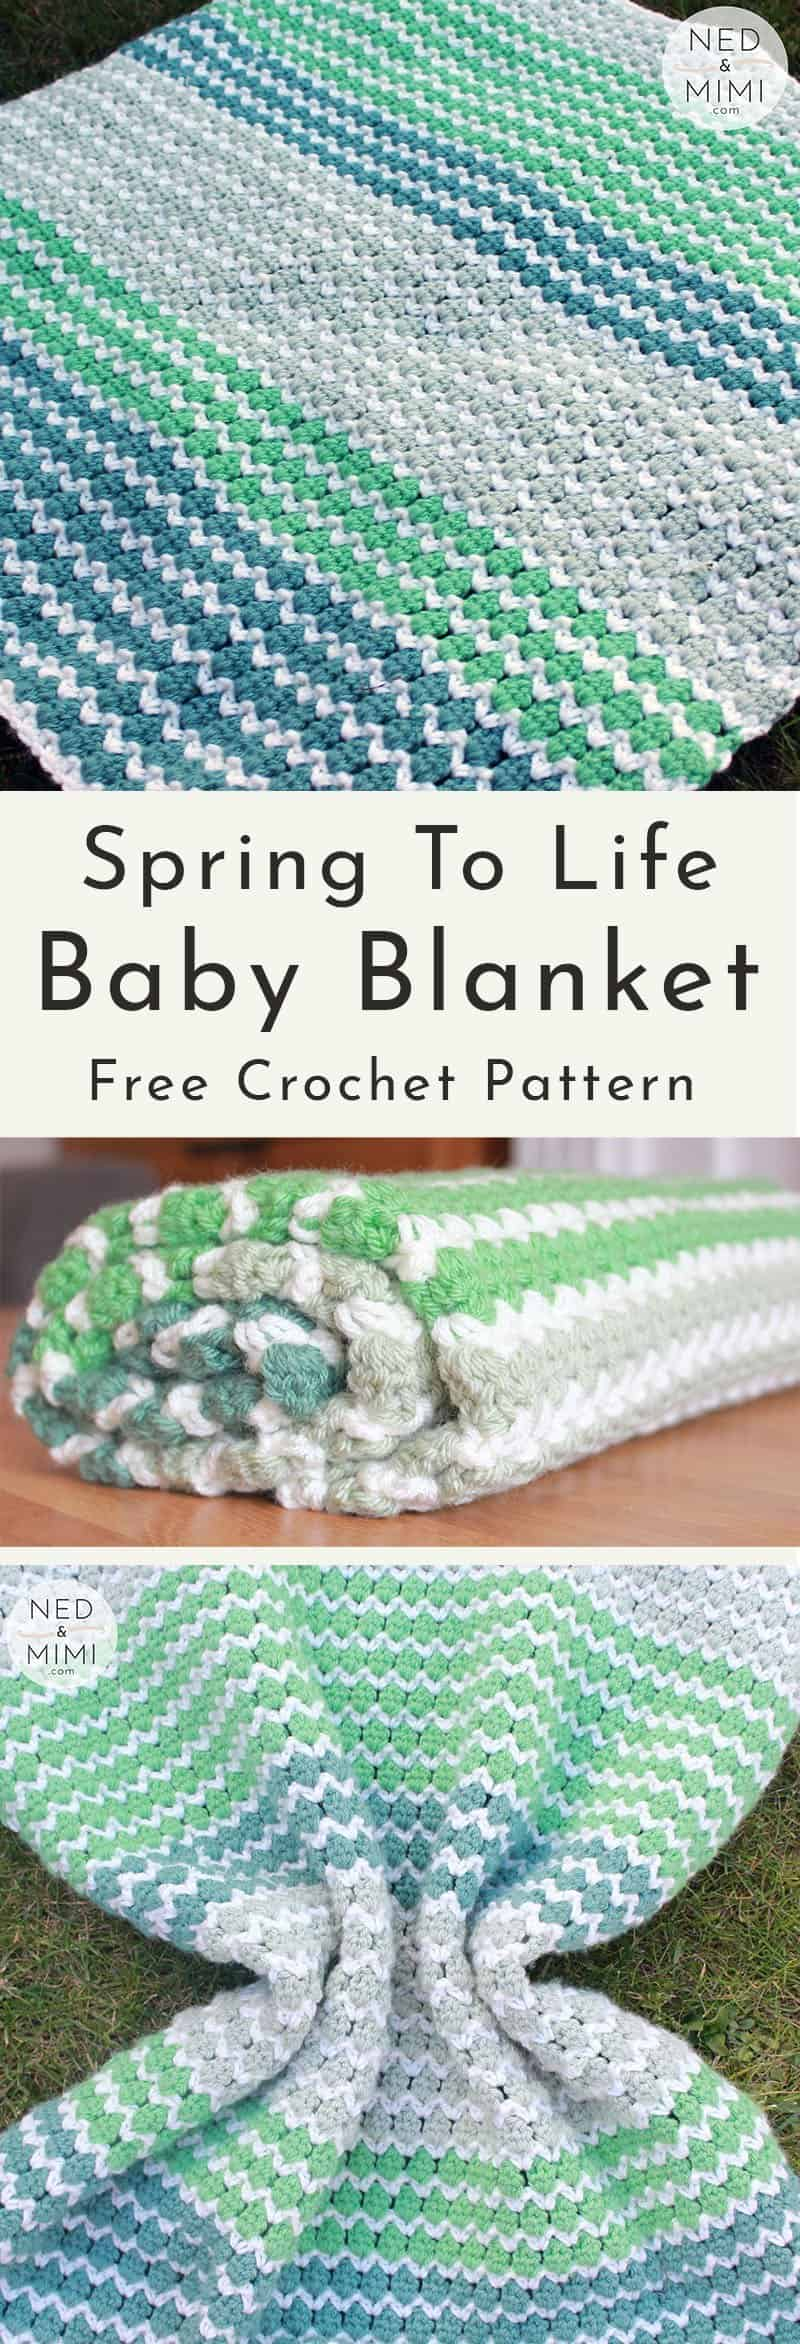 Spring To Life Crochet Baby Blanket (Free Pattern) | Ned & Mimi